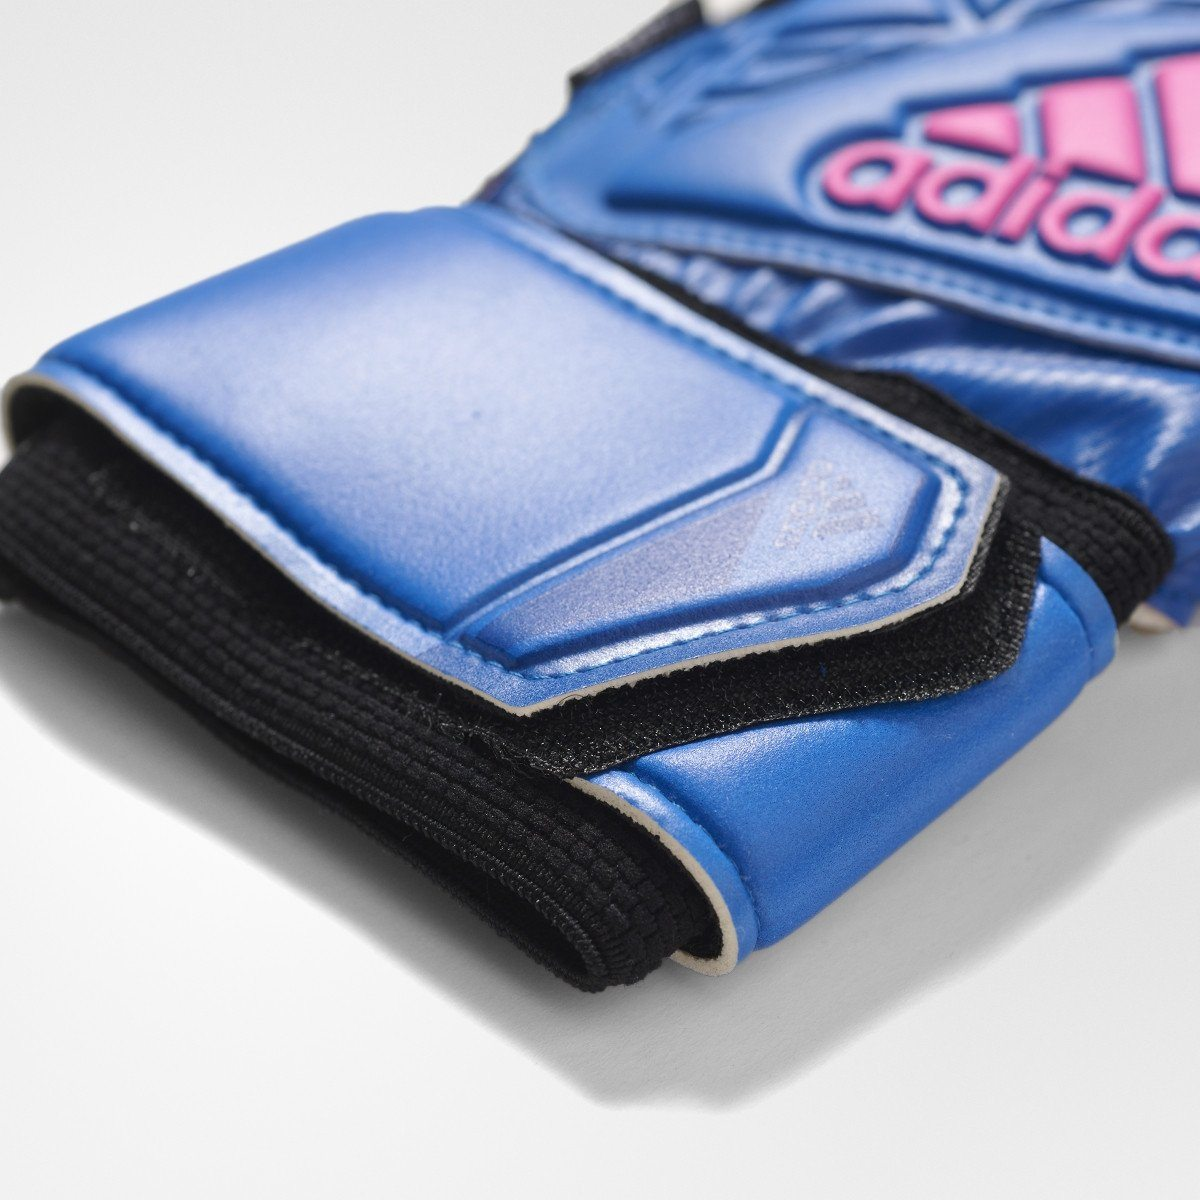 adidas Men's' Ace Fingersave Replique Goalkeeper Gloves Goalkeeper Gear Adidas 8 Blue/Black/White